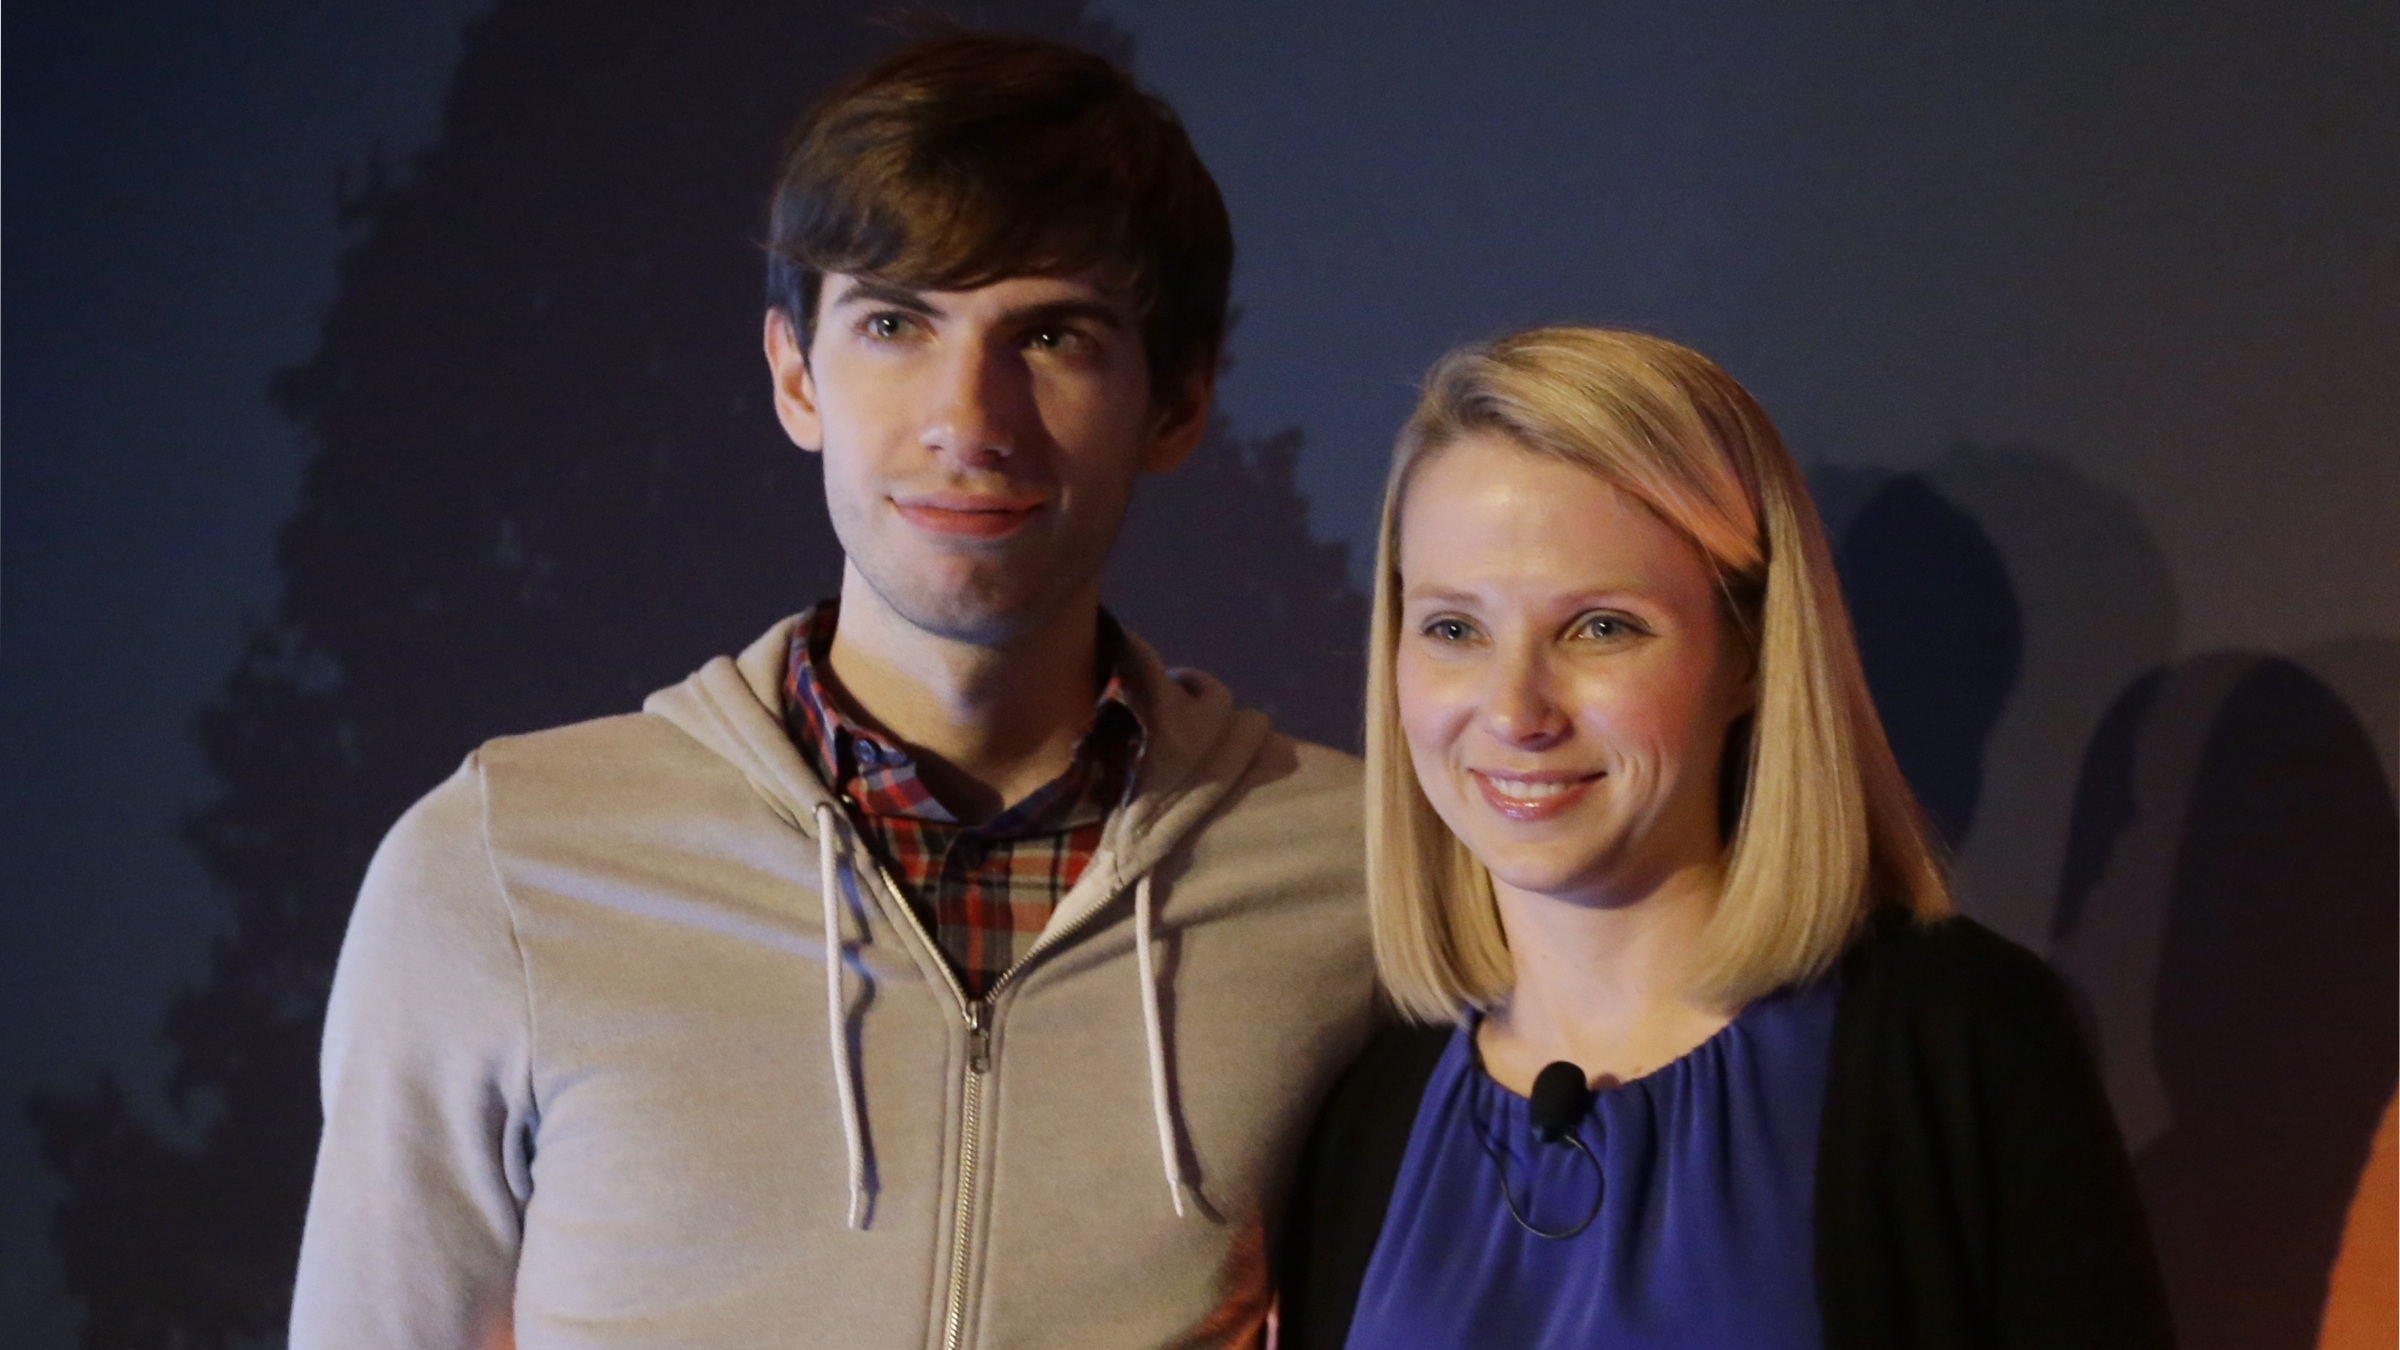 Yahoo CEO Marissa Mayer, and Tumblr Chief Executive David Karp speak during a news conference Monday, May 20, 2013, in New York. Yahoo edged up 31 cents, or 1.2 percent, to $26.83 after the Internet company said it was buying online blogging forum Tumblr for $1.1 billion. (AP Photo/Frank Franklin II)